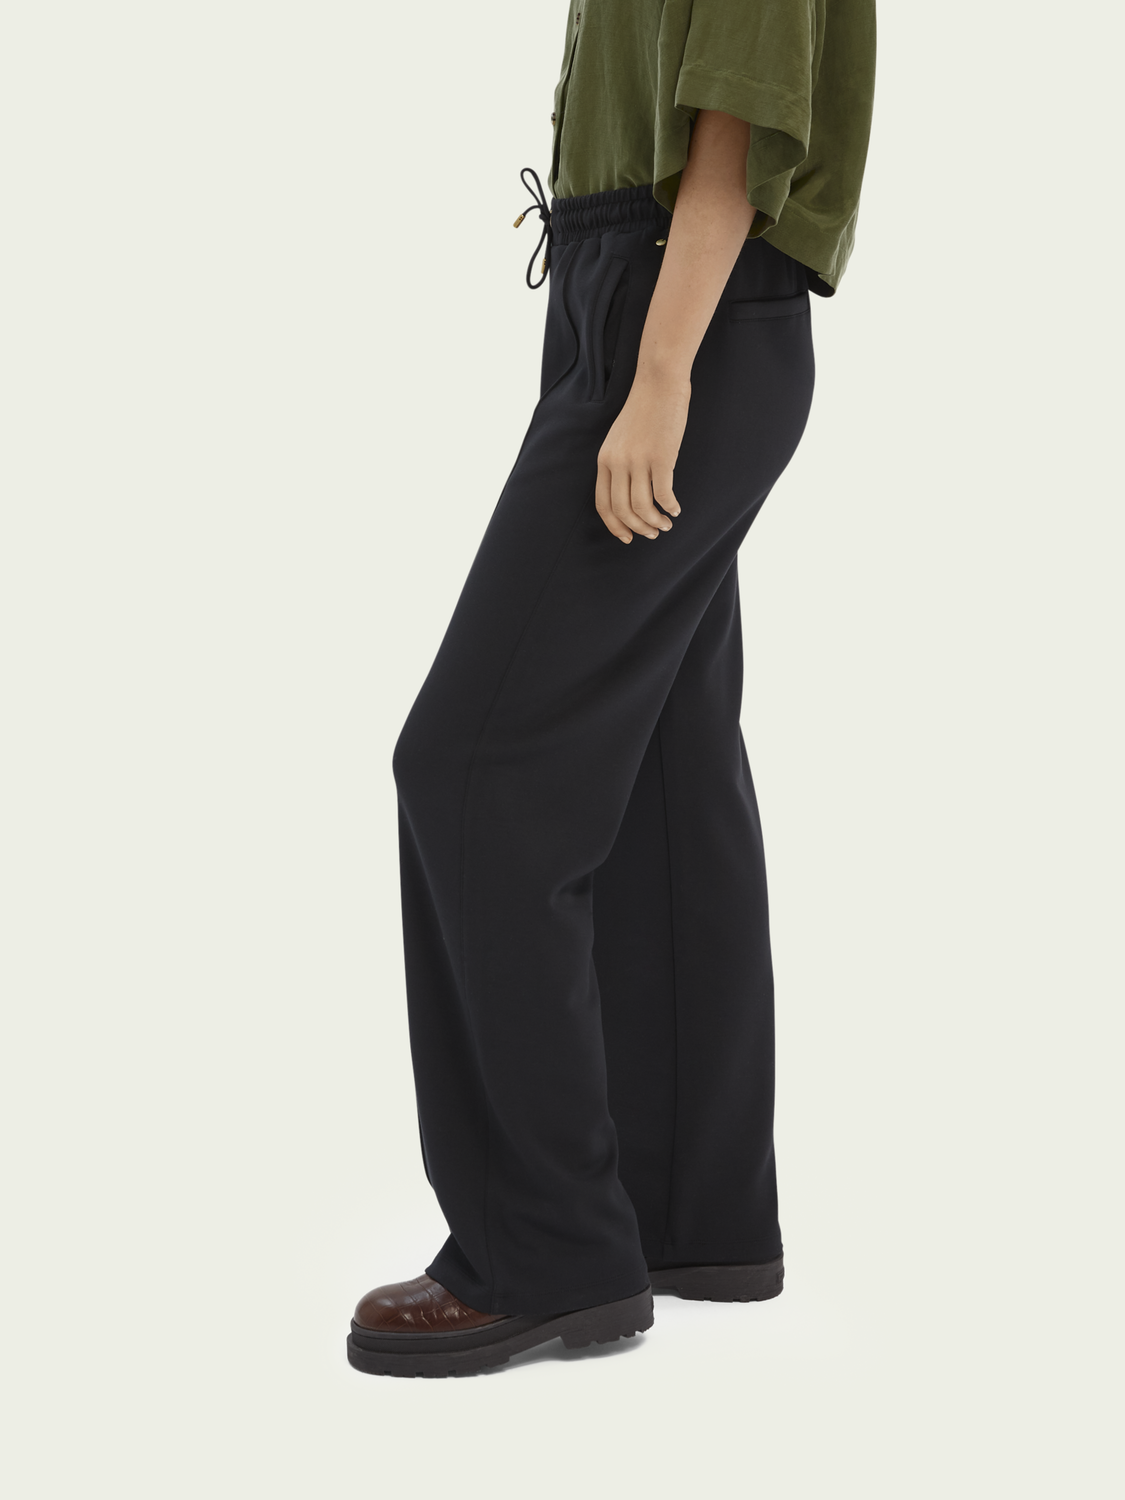 Women Drawstring sweatpants